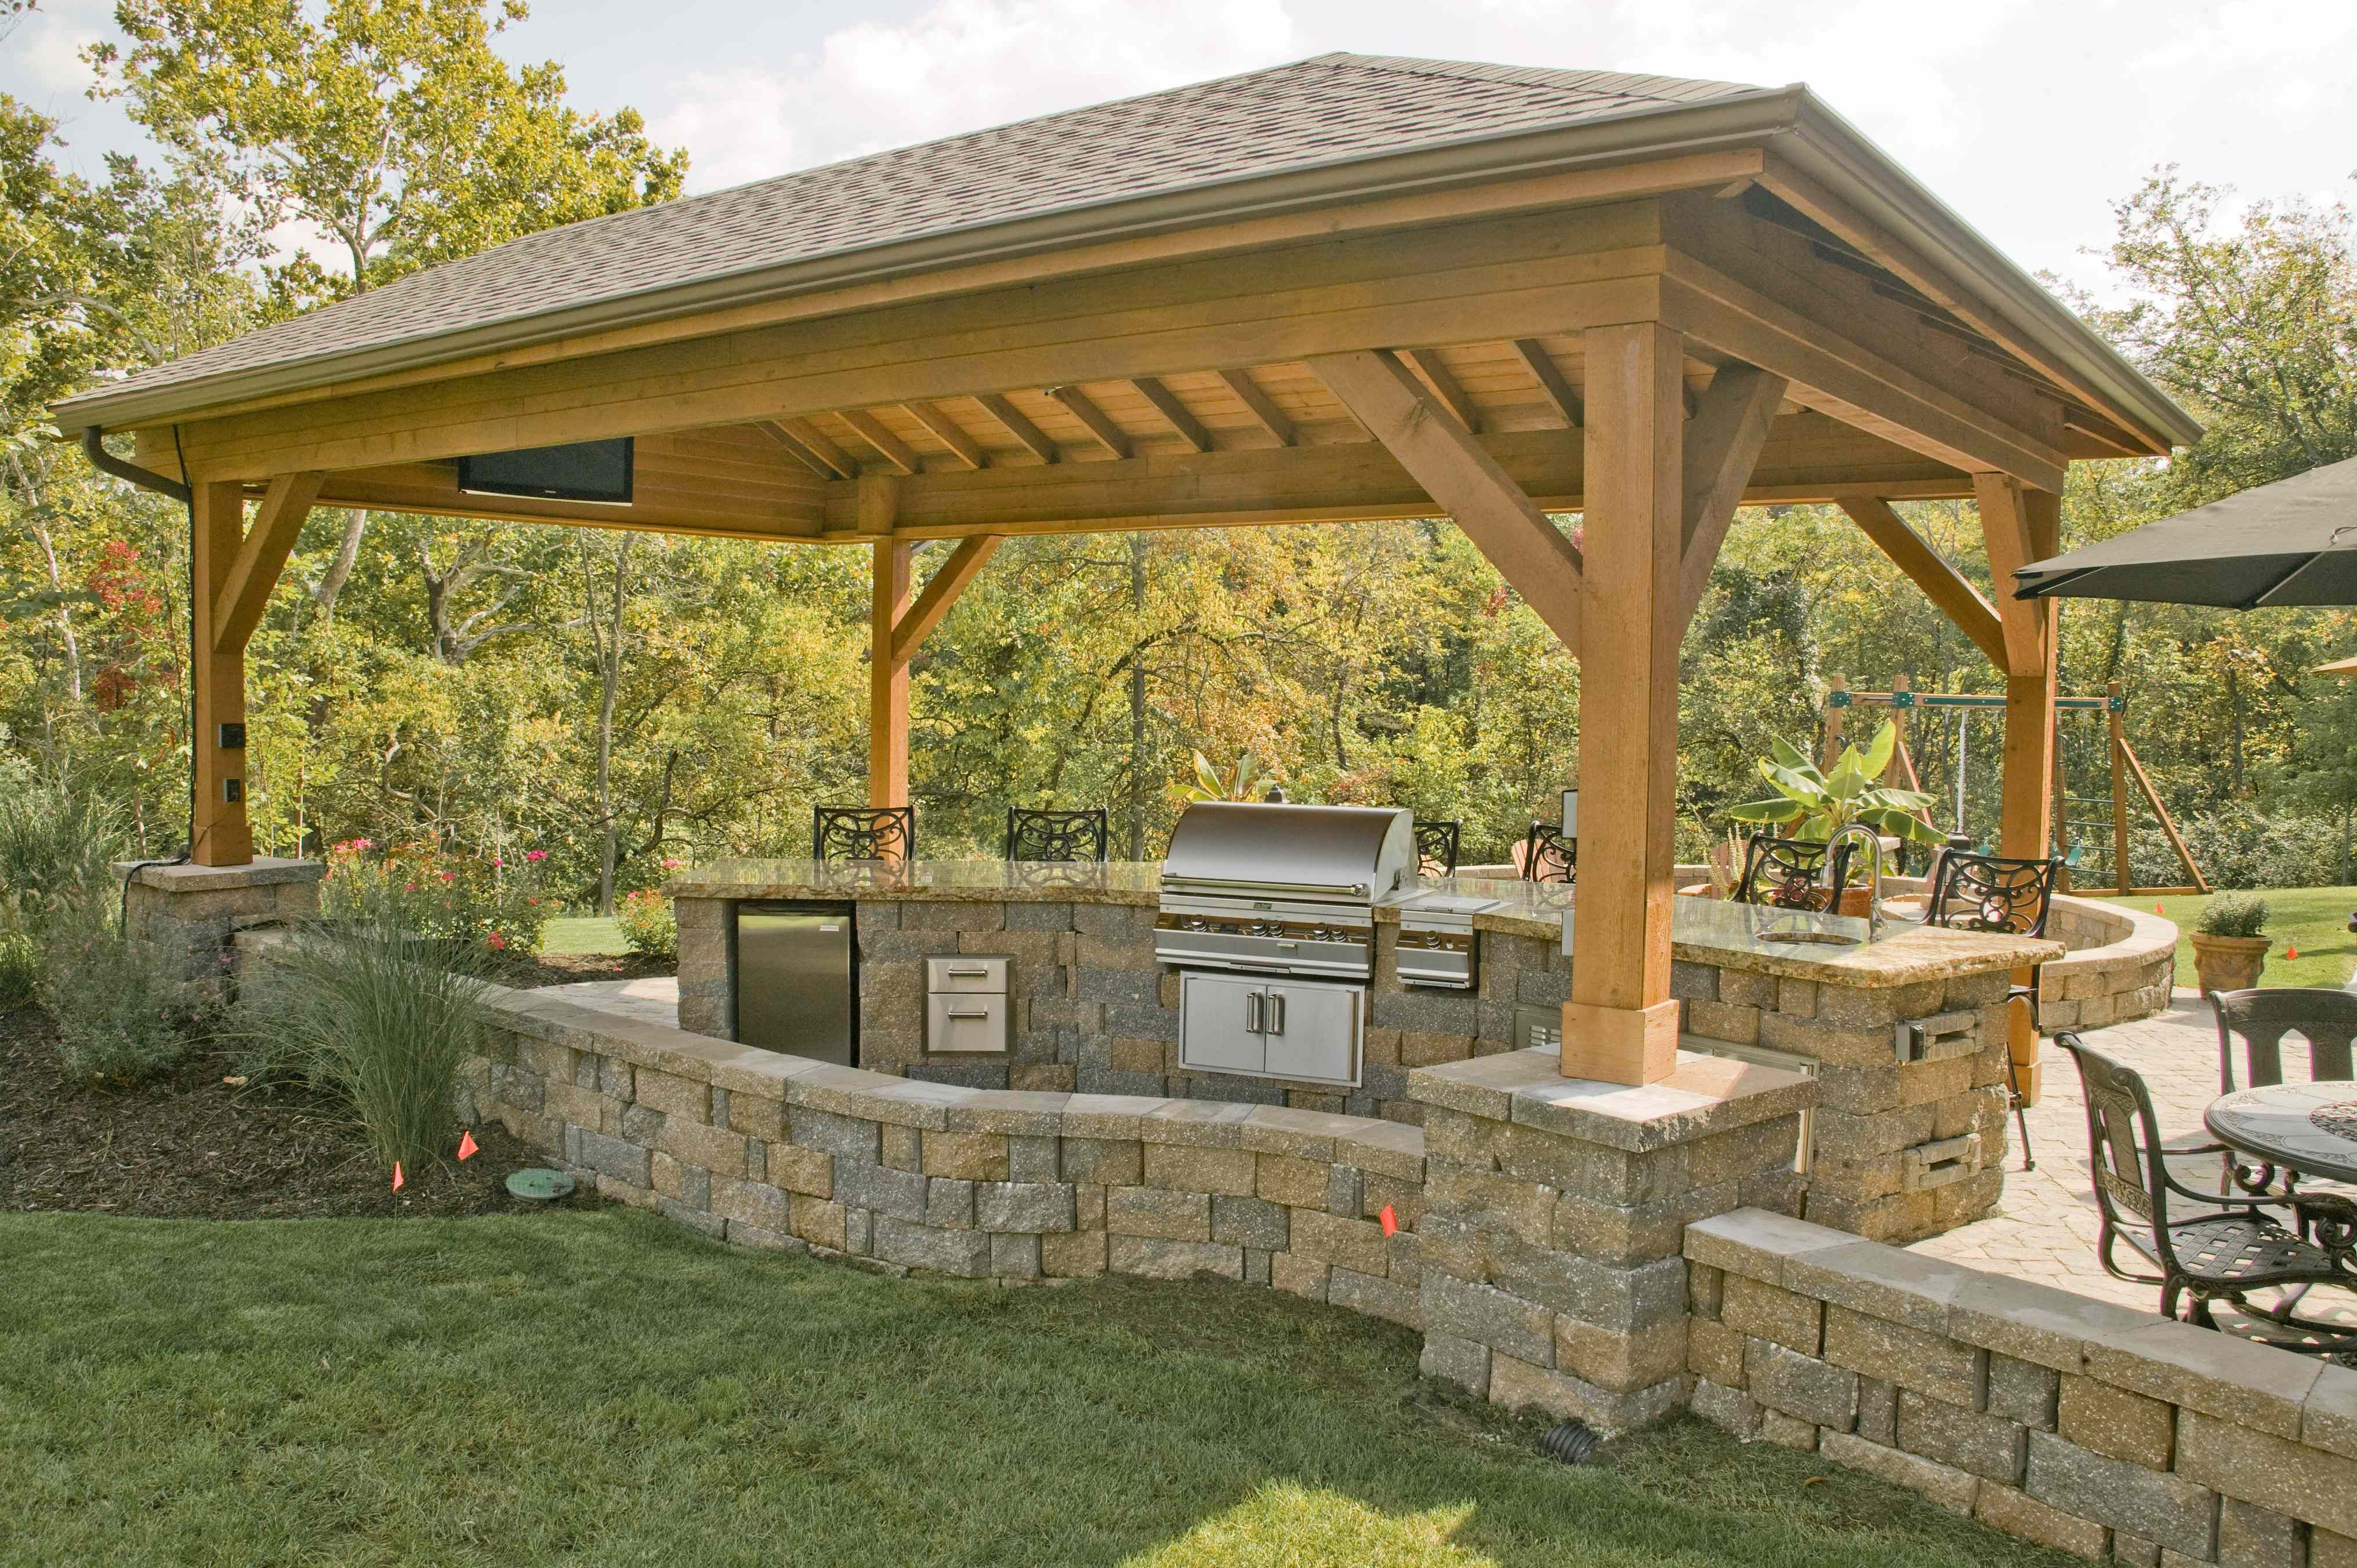 Covered Outdoor Grill and Bar | Outdoor oven, Outdoor ...